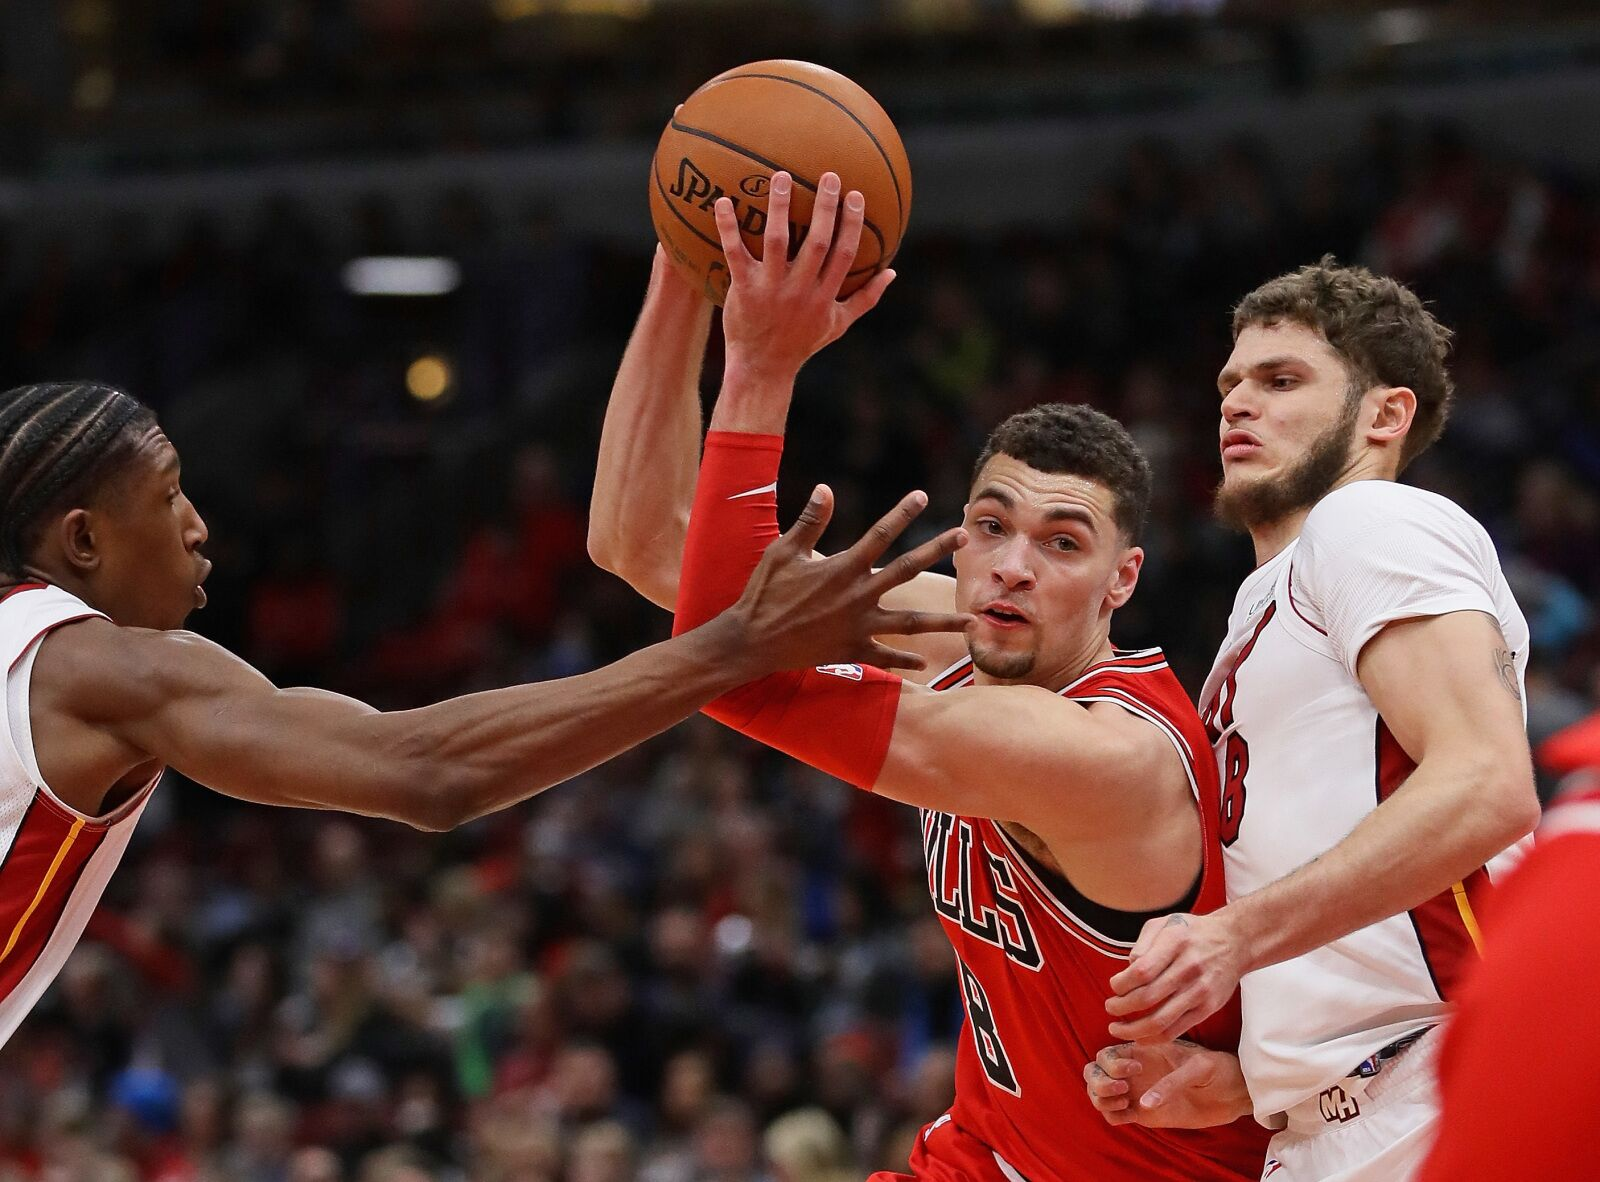 What to expect when Chicago Bulls face the Miami Heat